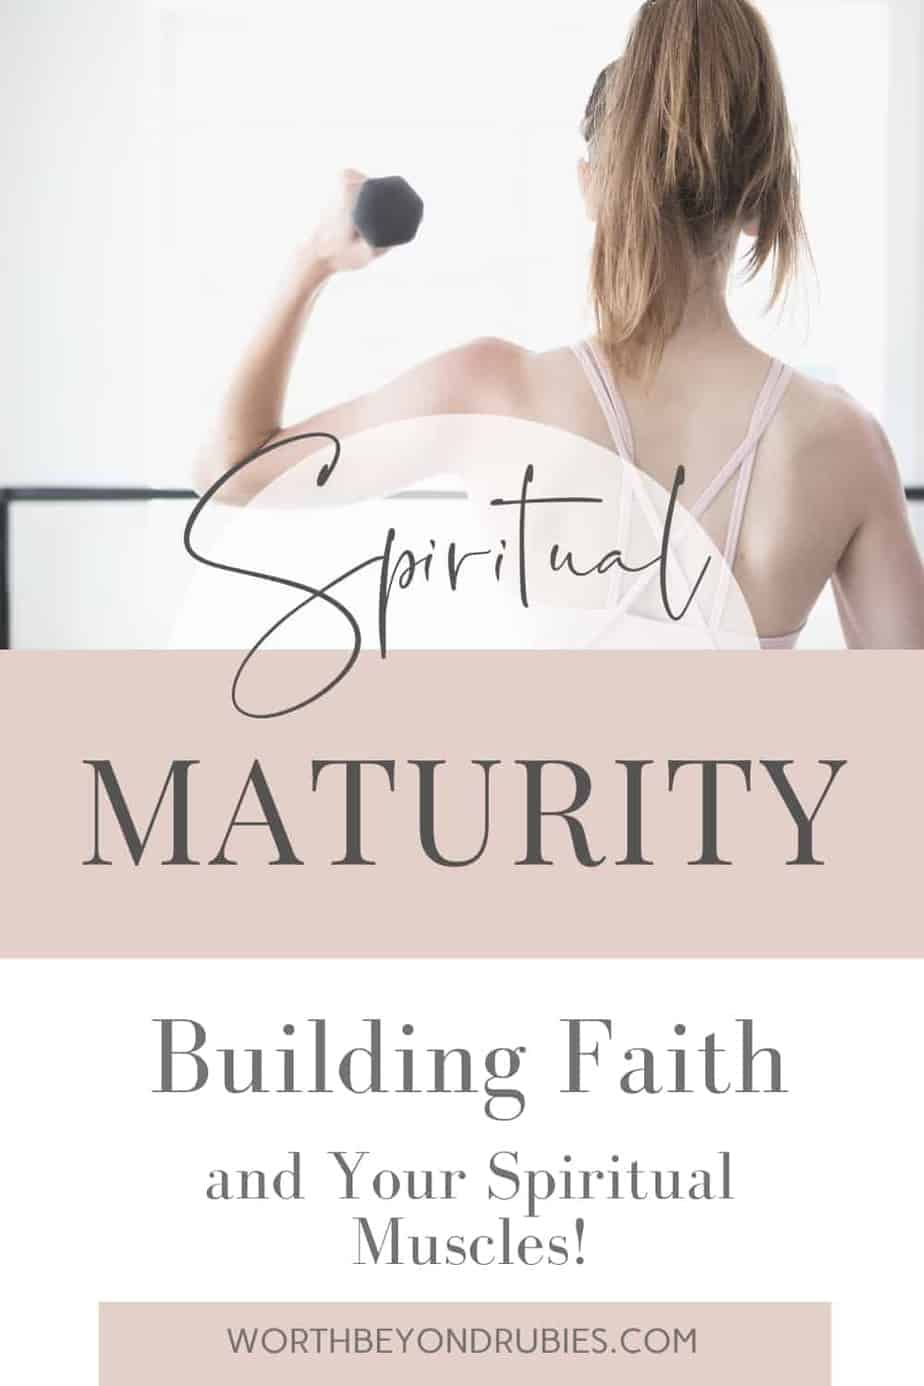 An image of a woman lifting a dumbbell facing away from the camera in a gym and text that says Spiritual Maturity - Building Faith and Your Spiritual Muscles!